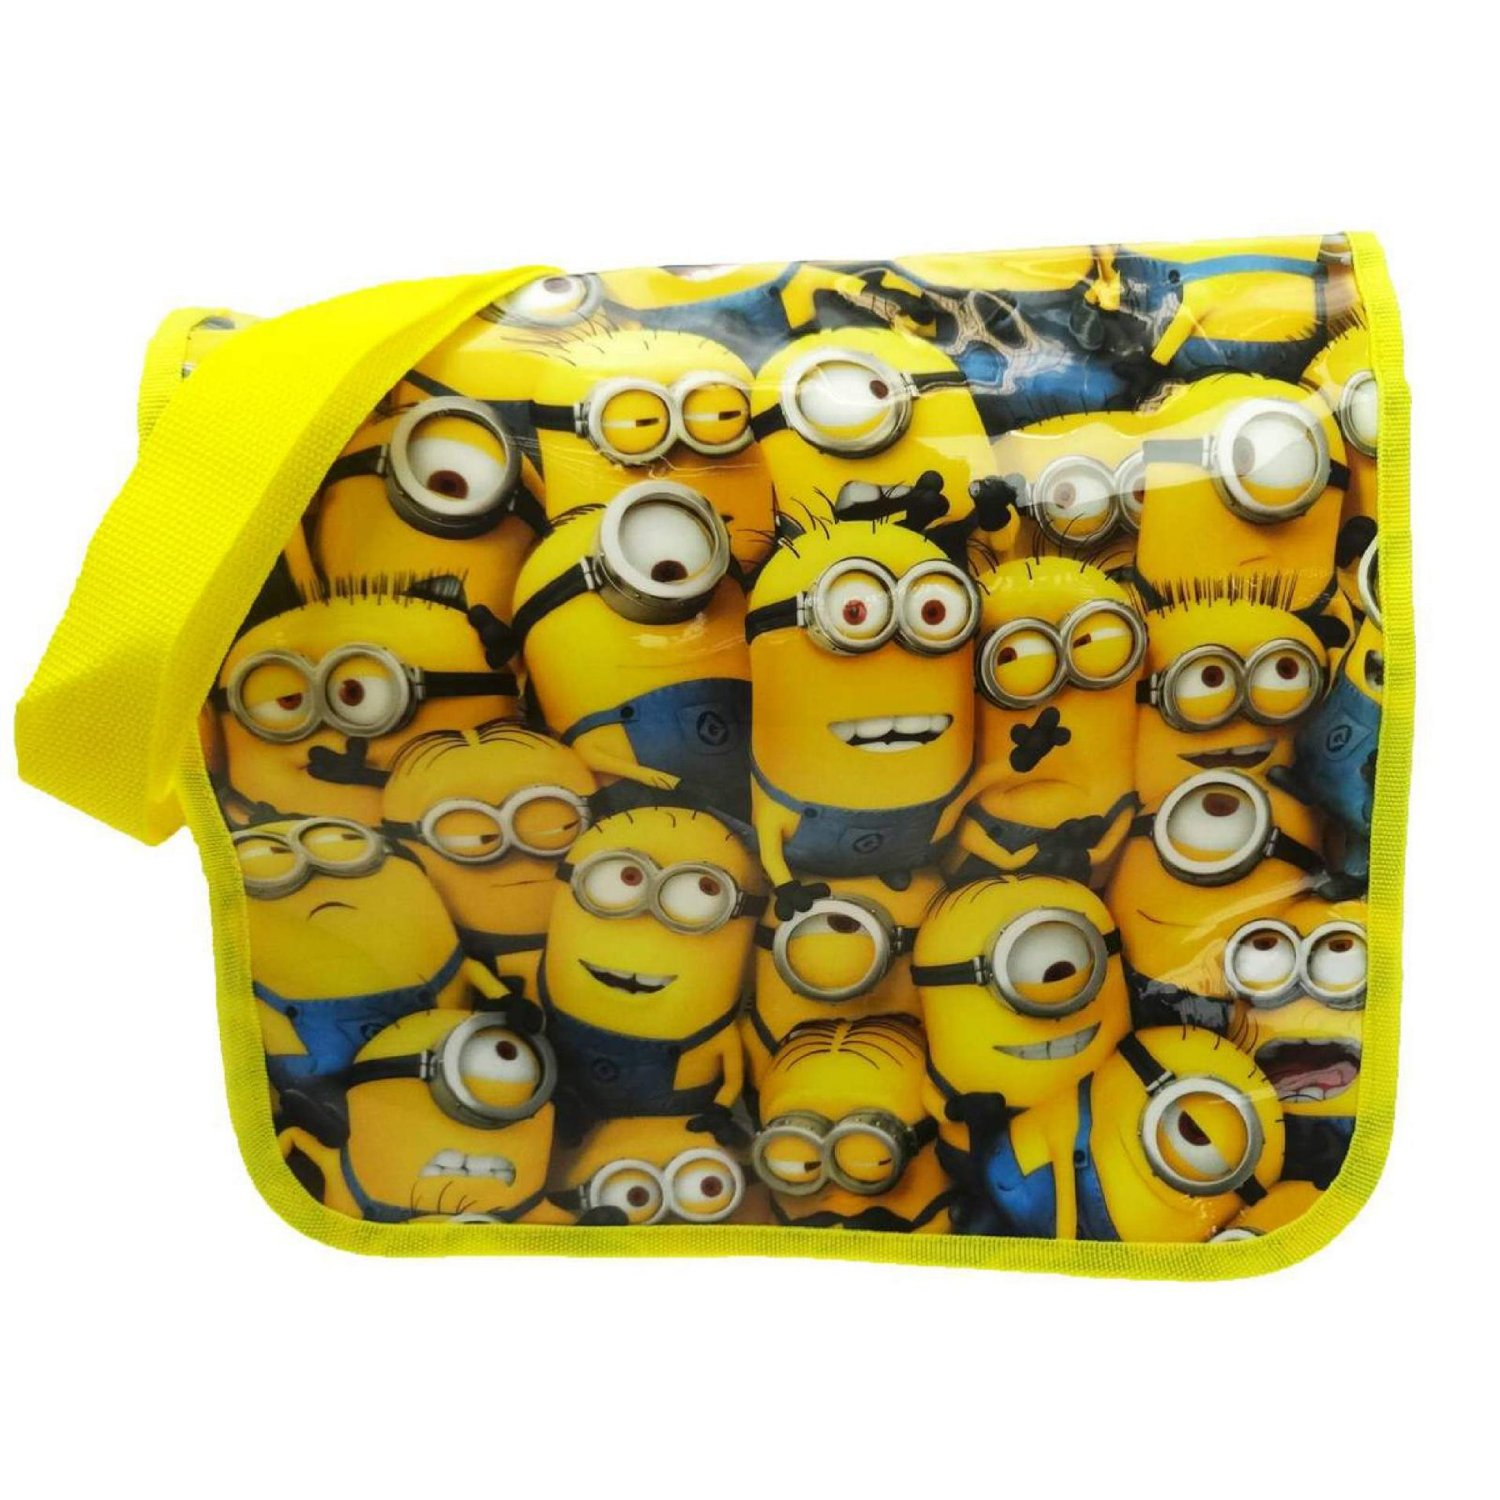 Despicable Me Minions despatch bag 001002